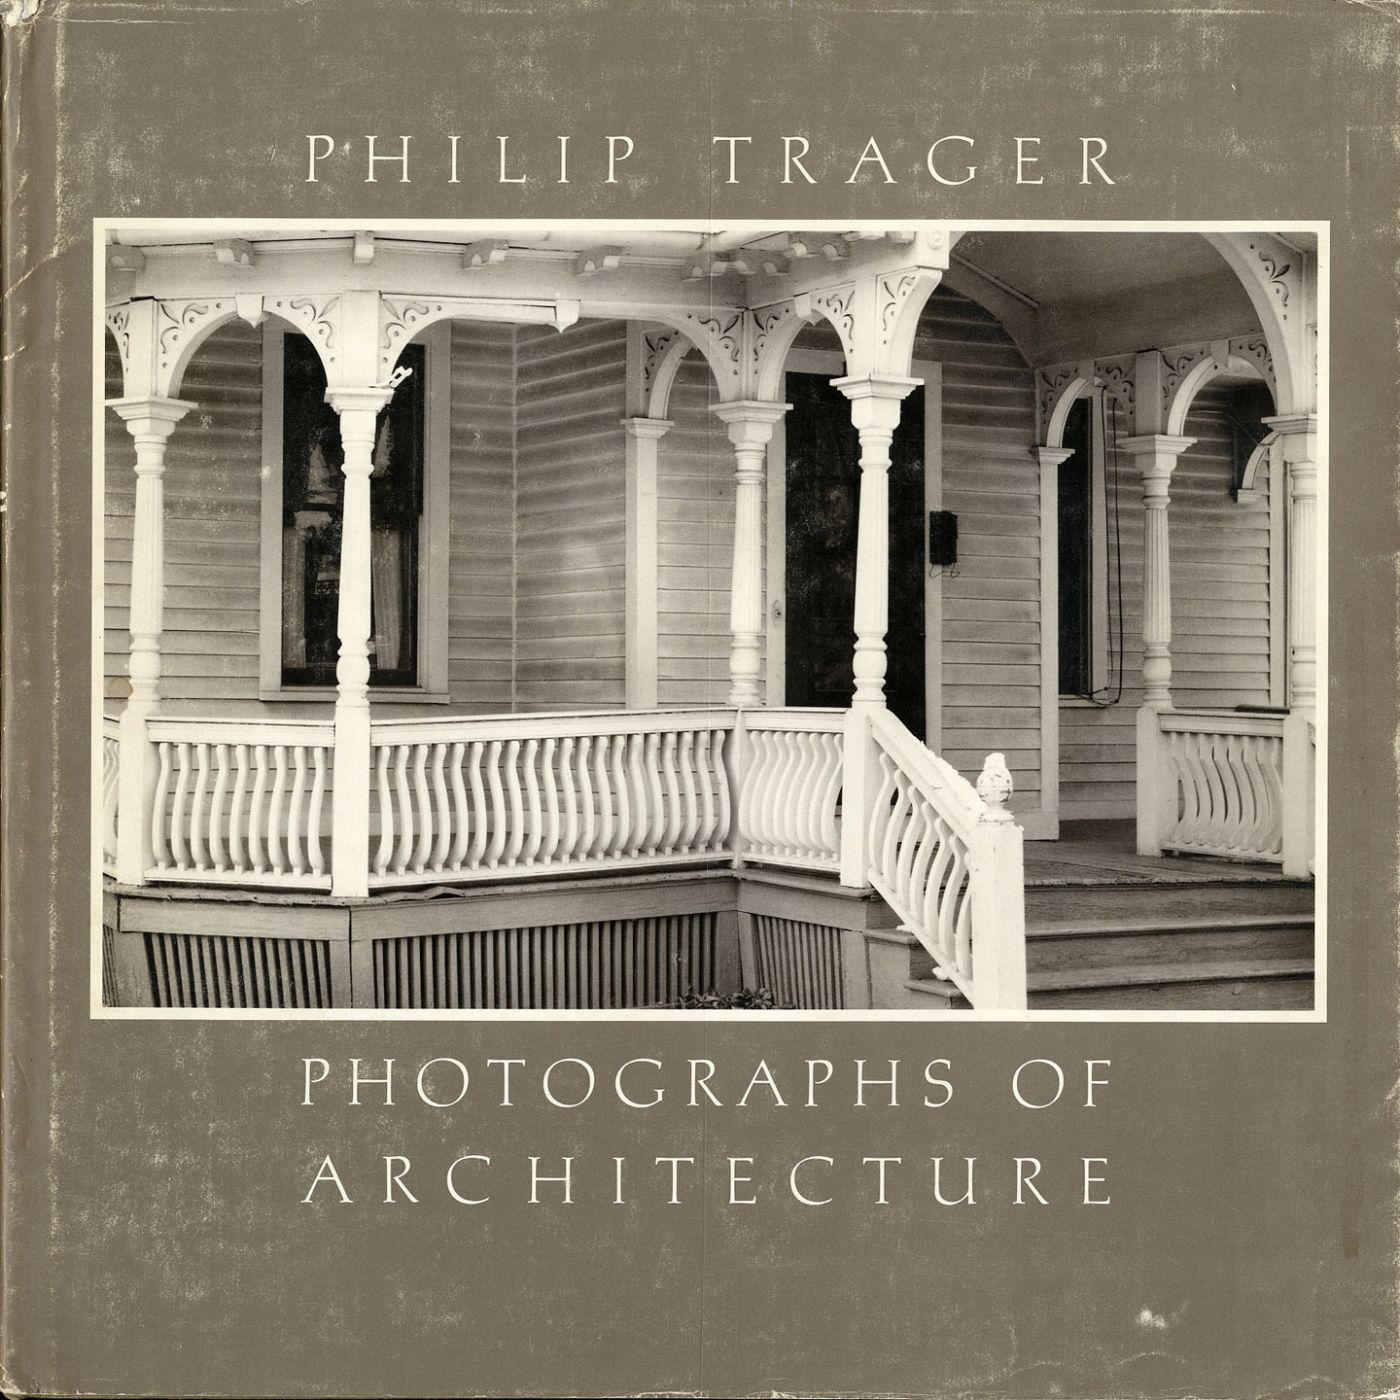 Philip Trager: Photographs of Architecture [SIGNED]